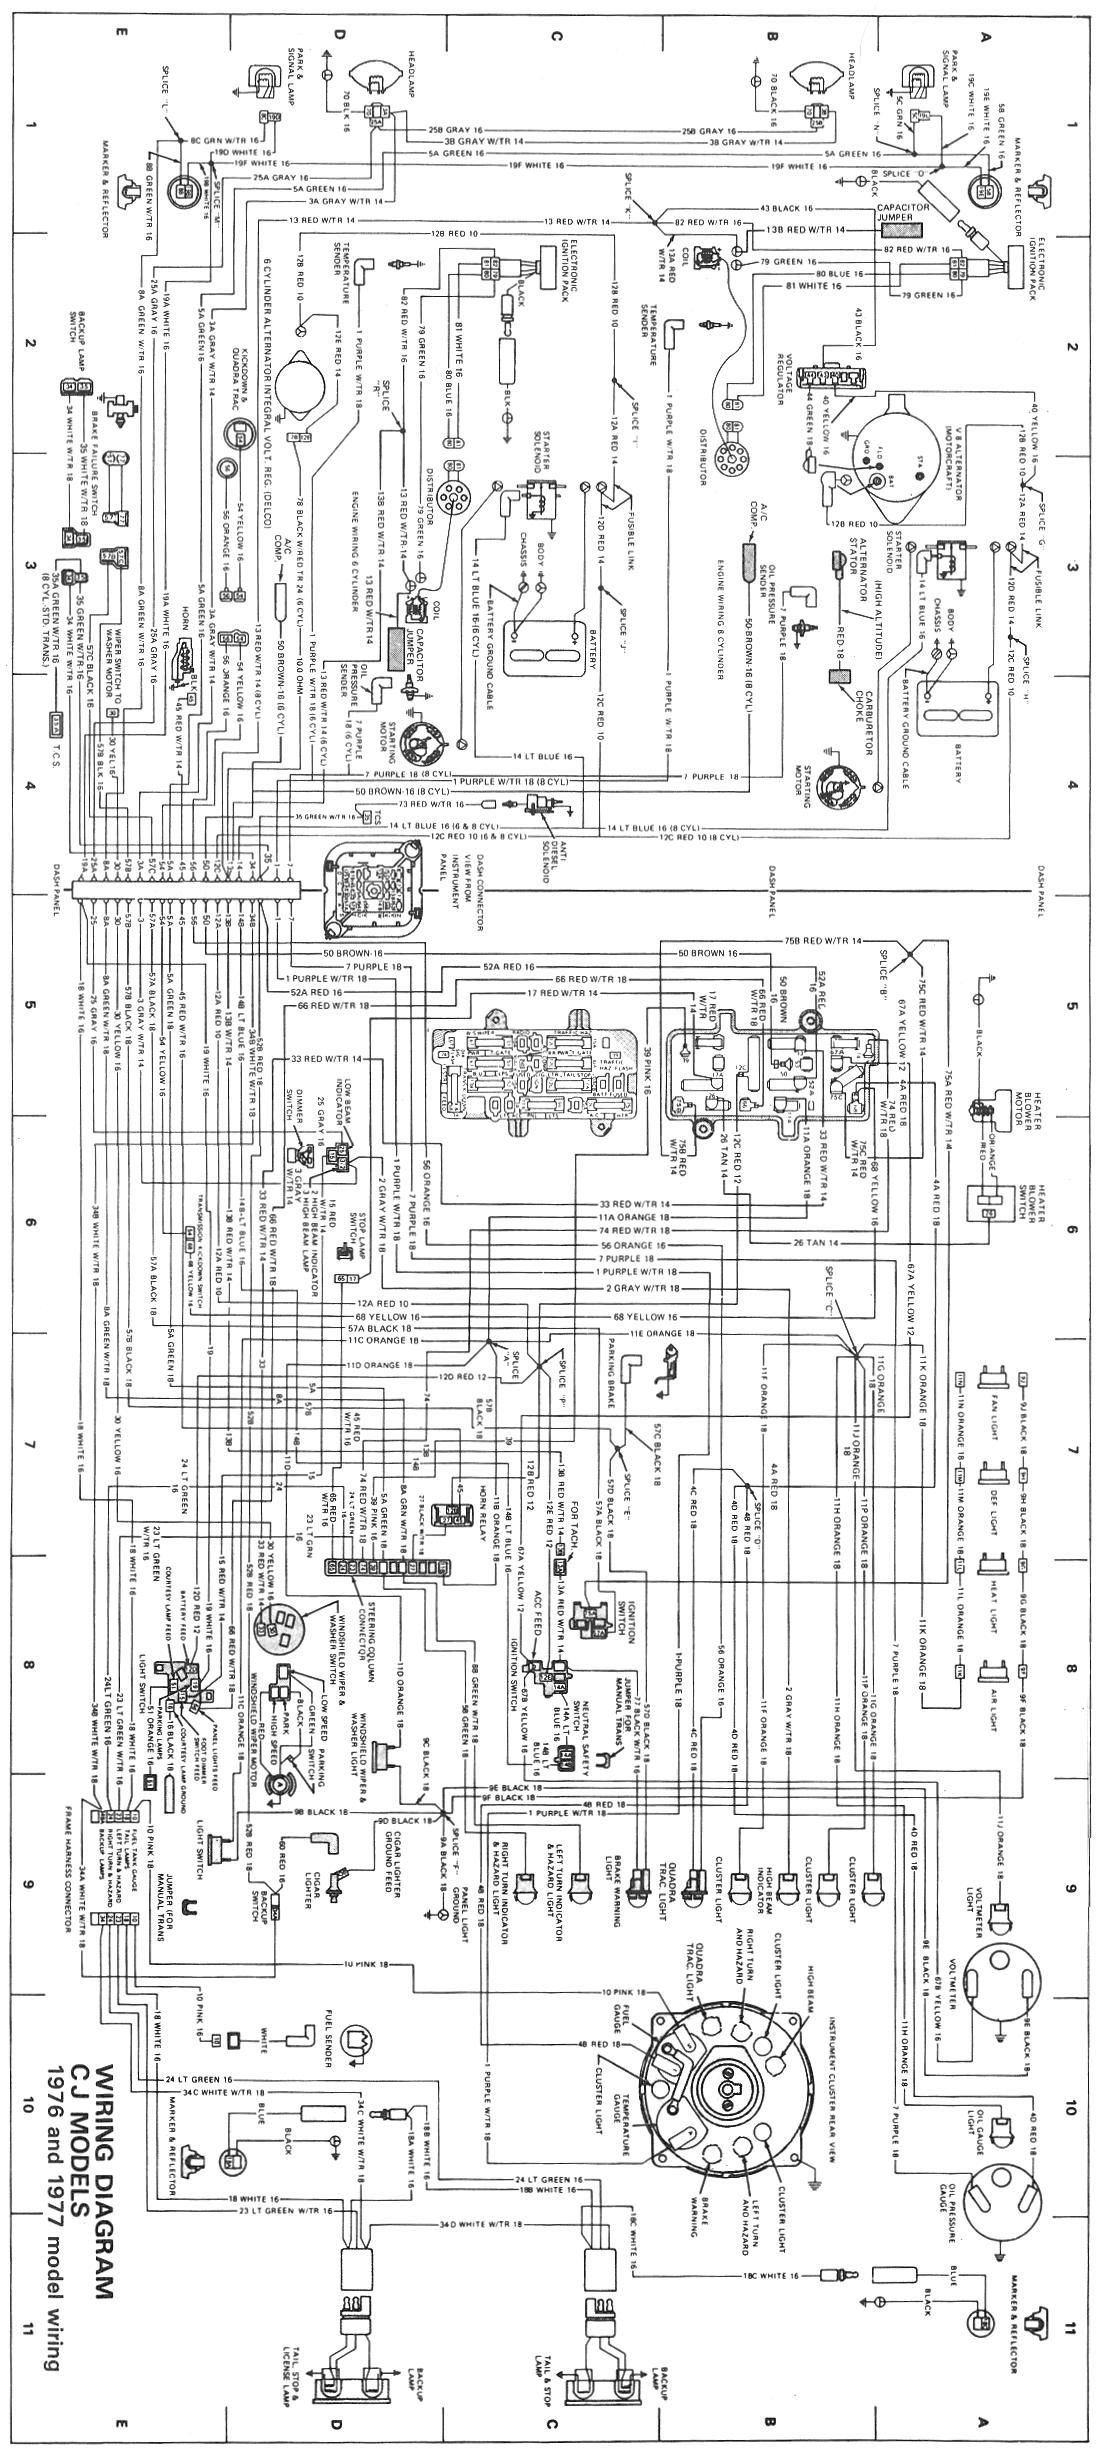 cj-wiring-diagram-1976-1977.jpg 1,100×2,459 pixels | 1976 ... 1983 cj wiring diagram